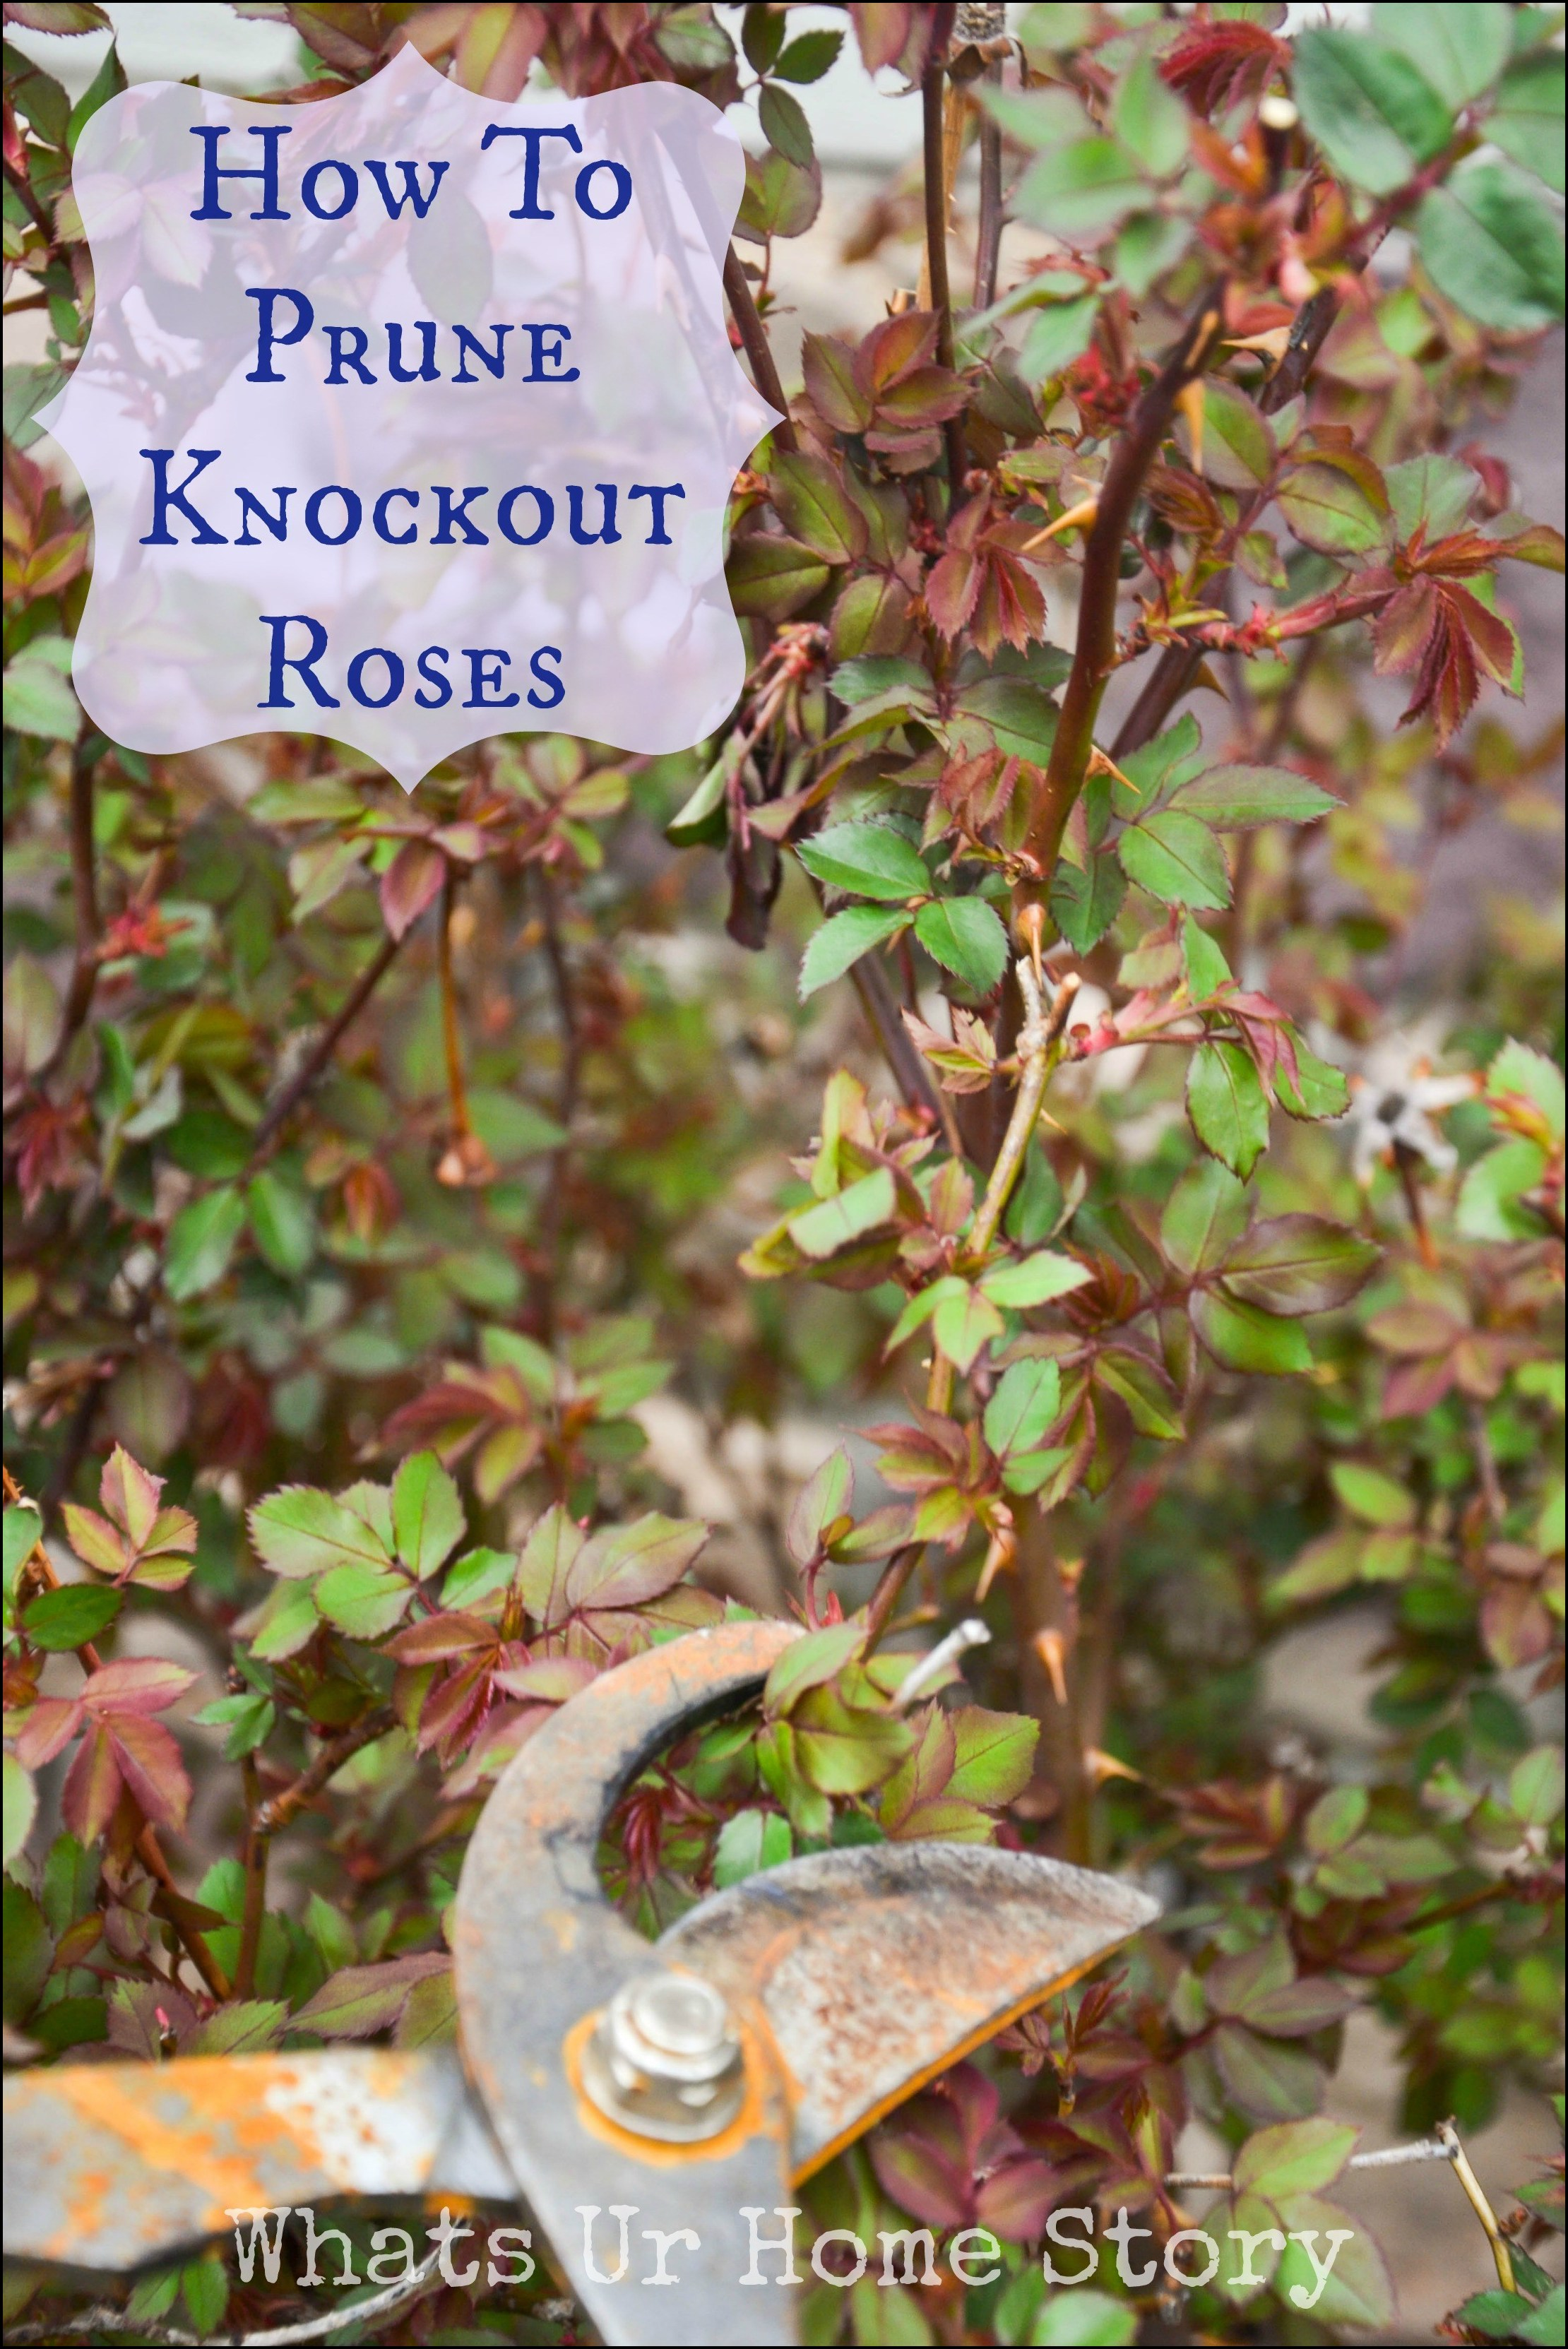 When Do You Prune Knockout Roses